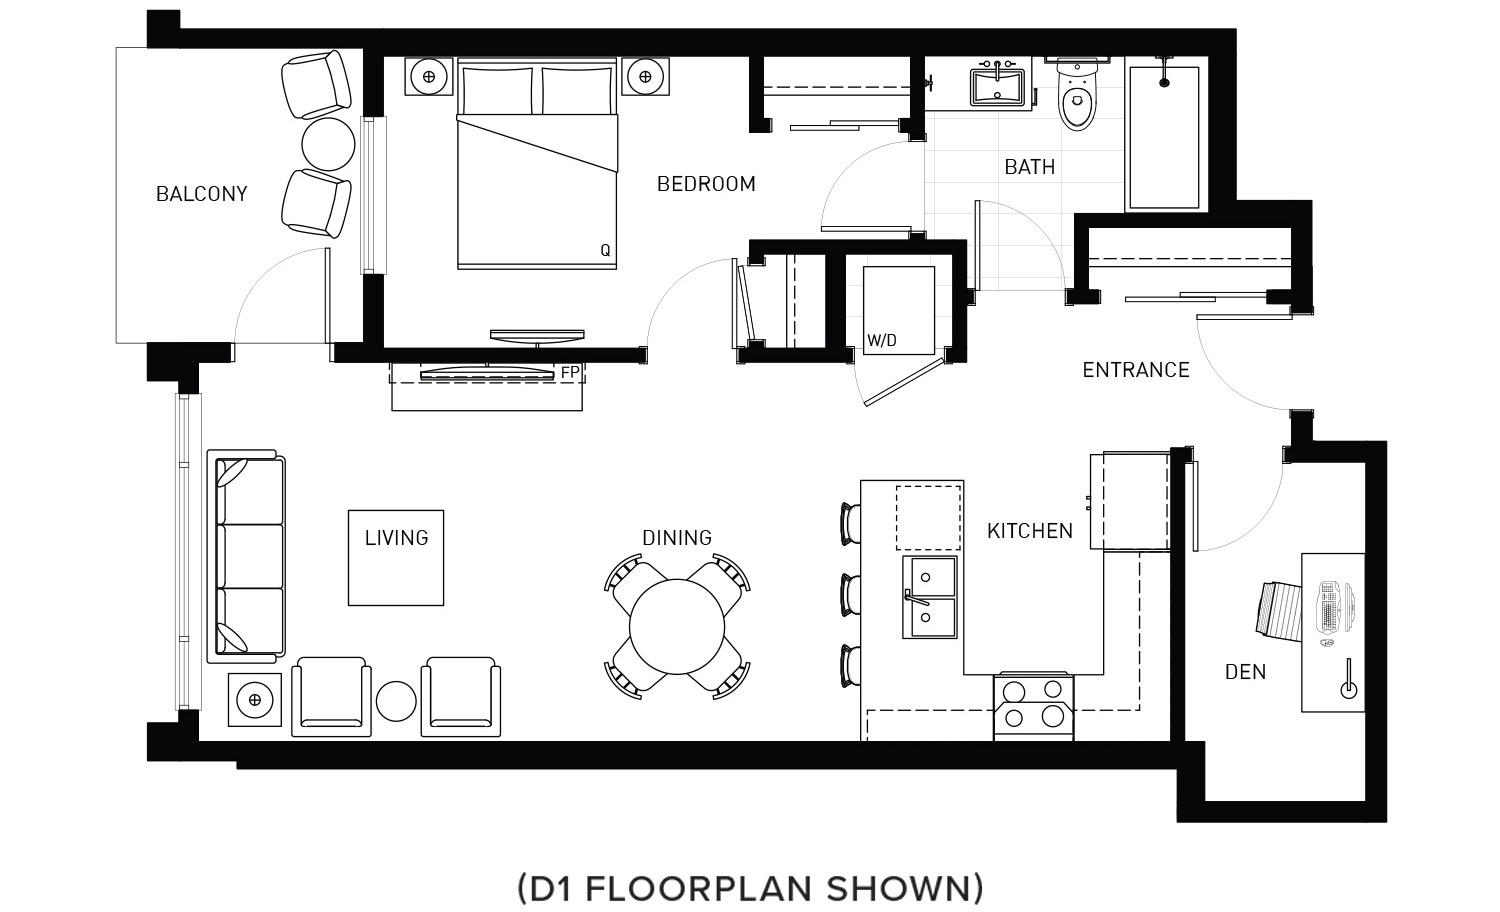 Plan D2 Floorplan